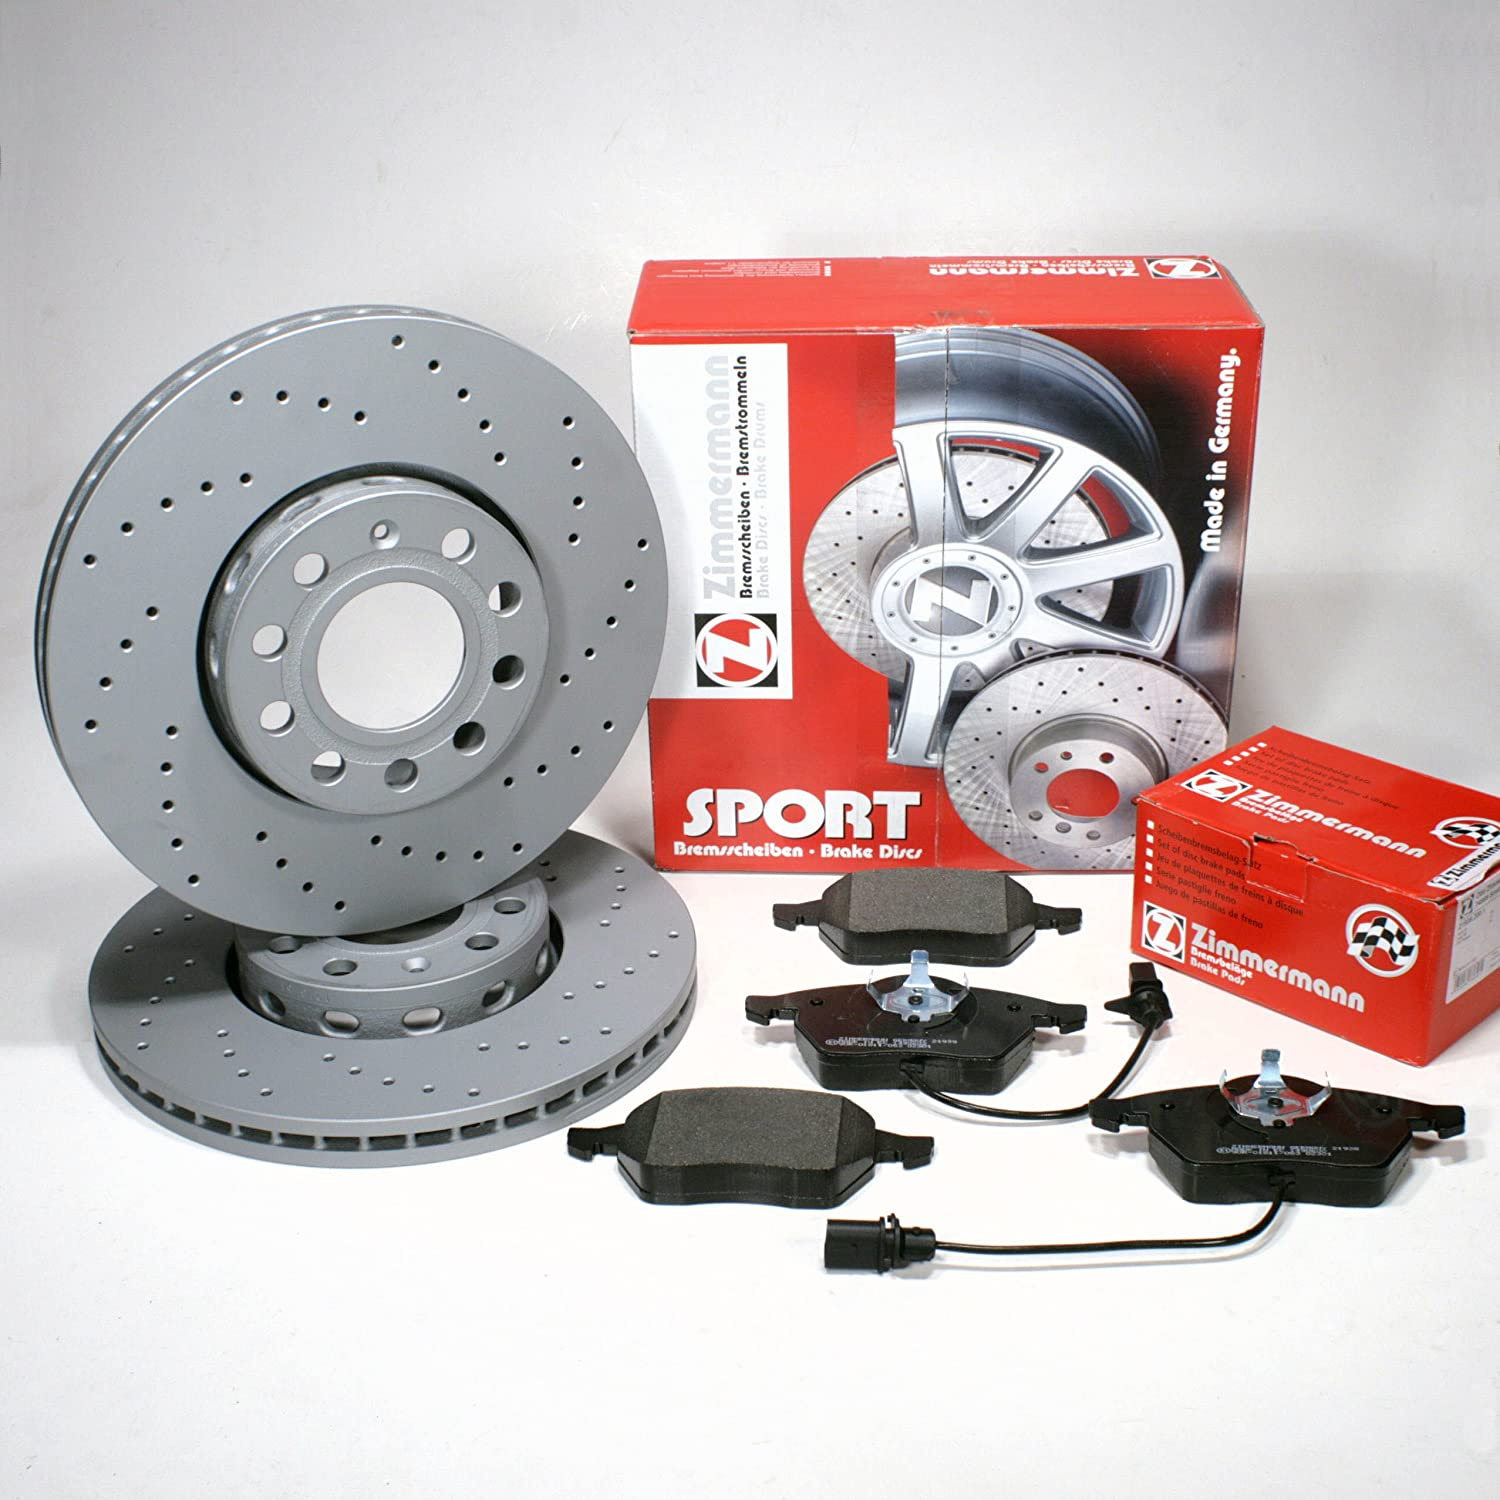 Zimmermann Sport Brake Discs Perforated Diameter 312 mm Coat Z/with Brake Front Cable Alarm/Front Axle Autoparts-Online